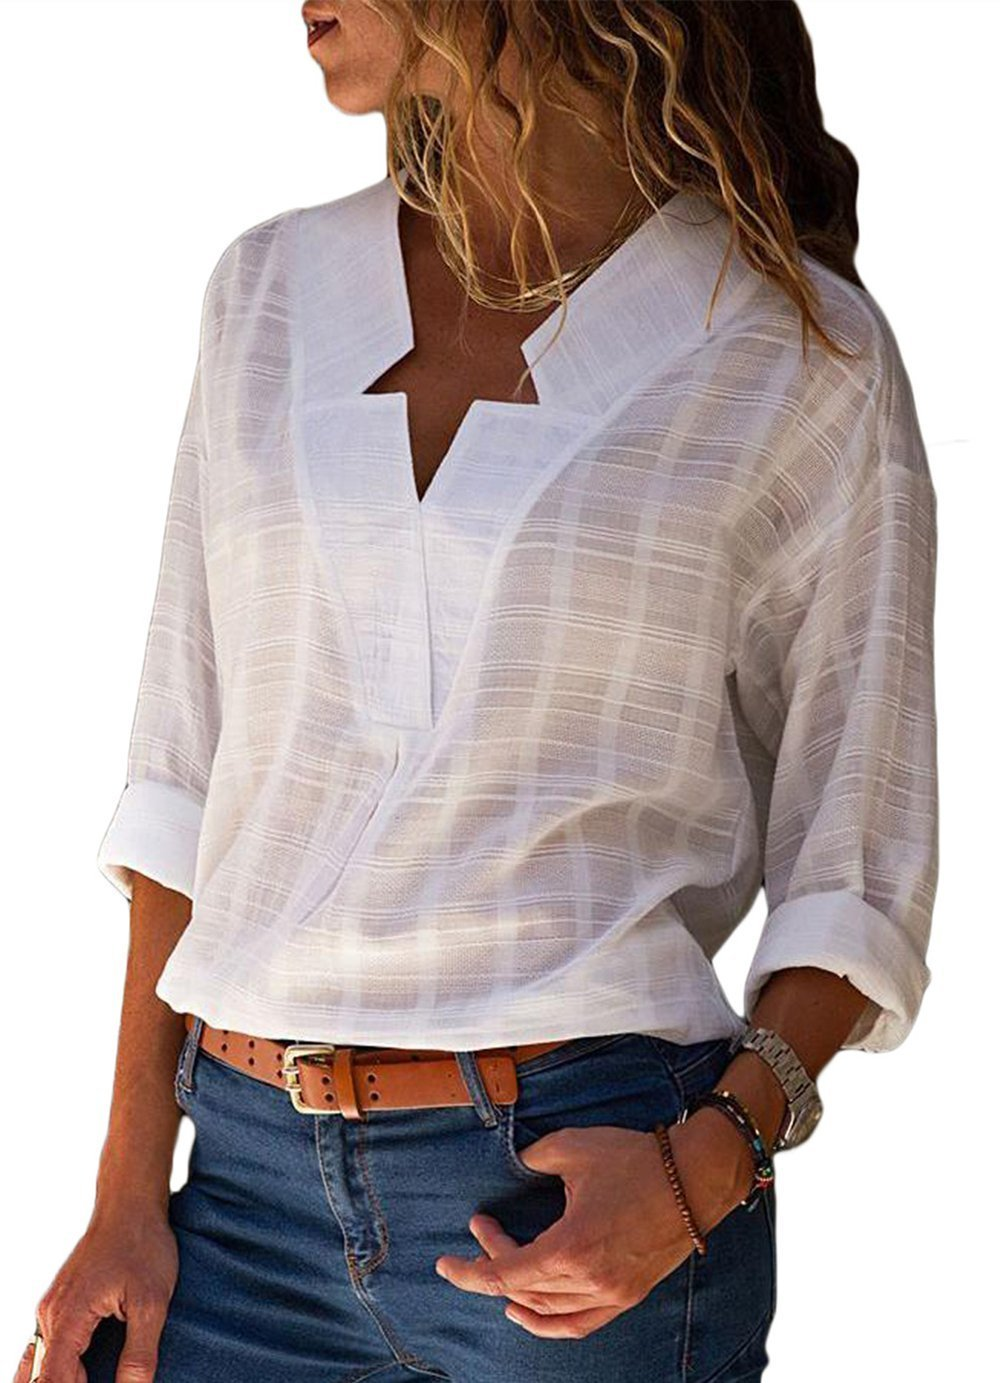 Happy Sailed Women Casual V Neck Cuffed Sleeve Print Loose Fit T Shirt Blouses Tops X-Large White by Happy Sailed (Image #1)